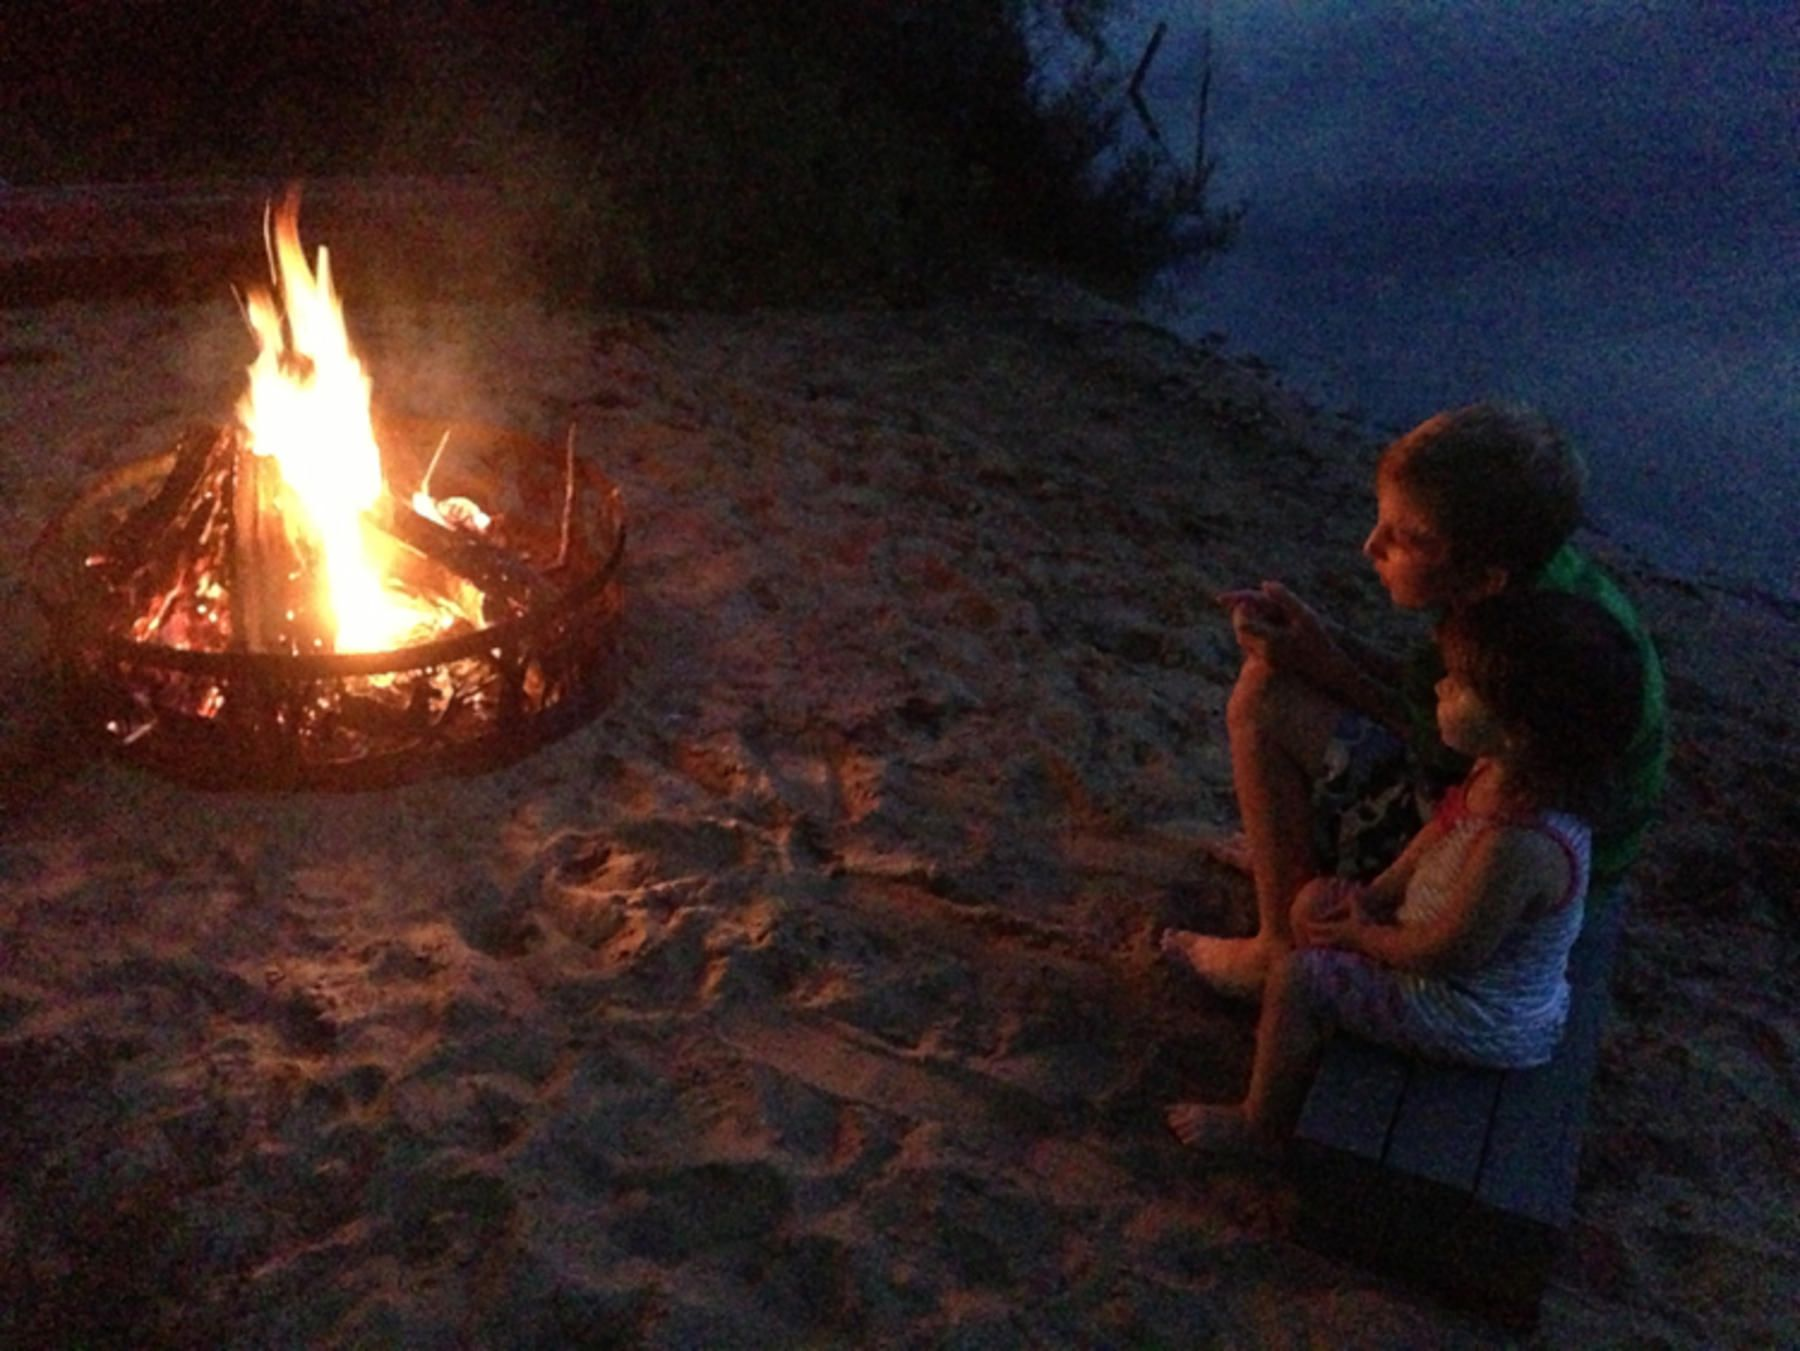 Family camping trips can be unpredictable - find out what to expect AND how to handle clean-up! | summer | family vacation | laundry tips | funny list | parenting humor from @RobynHTV